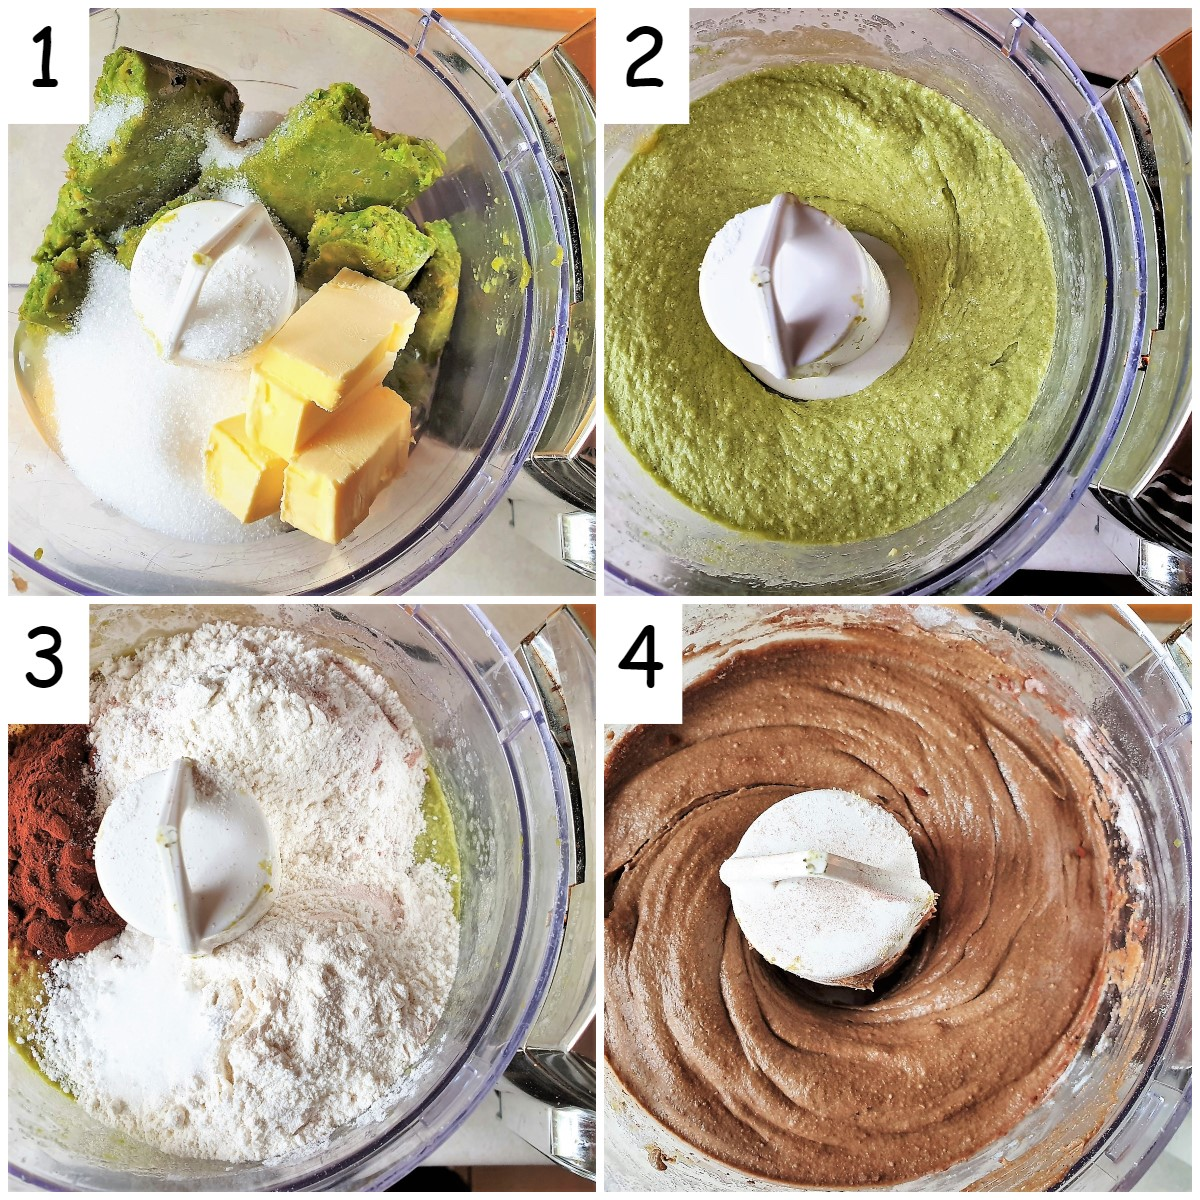 A collage of 4 images showing the steps for mixing the batter for chocolate mud brownies.